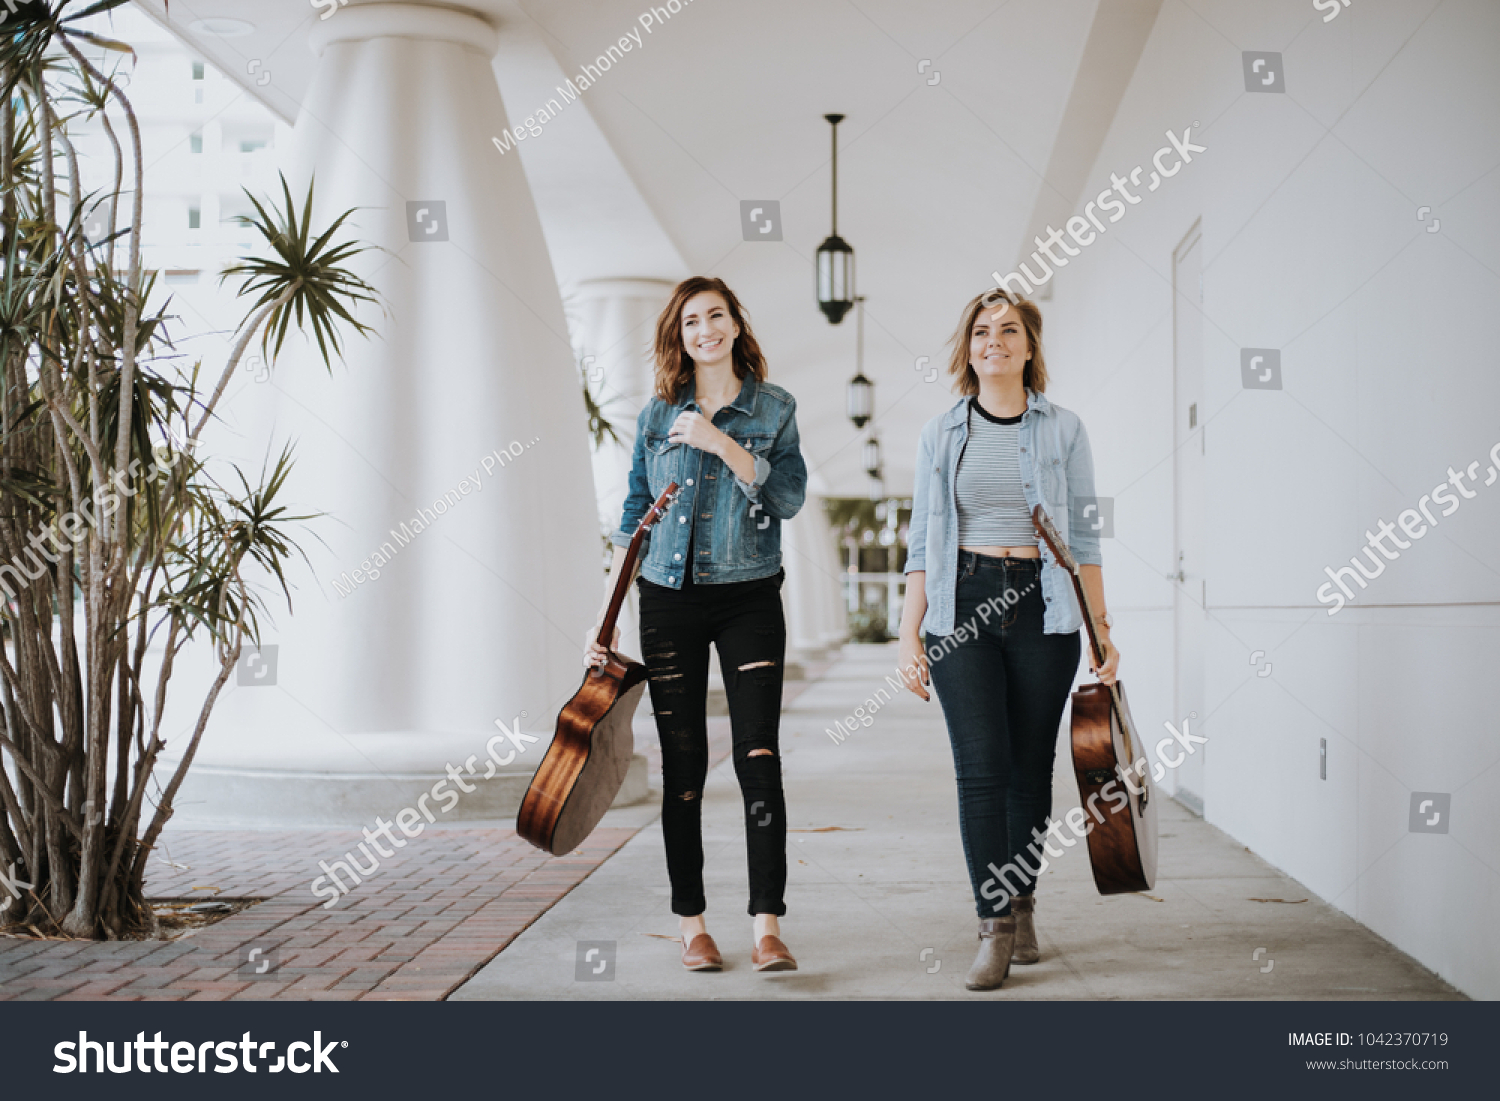 Pretty Female Musicians Walking Down Outdoor Corridor